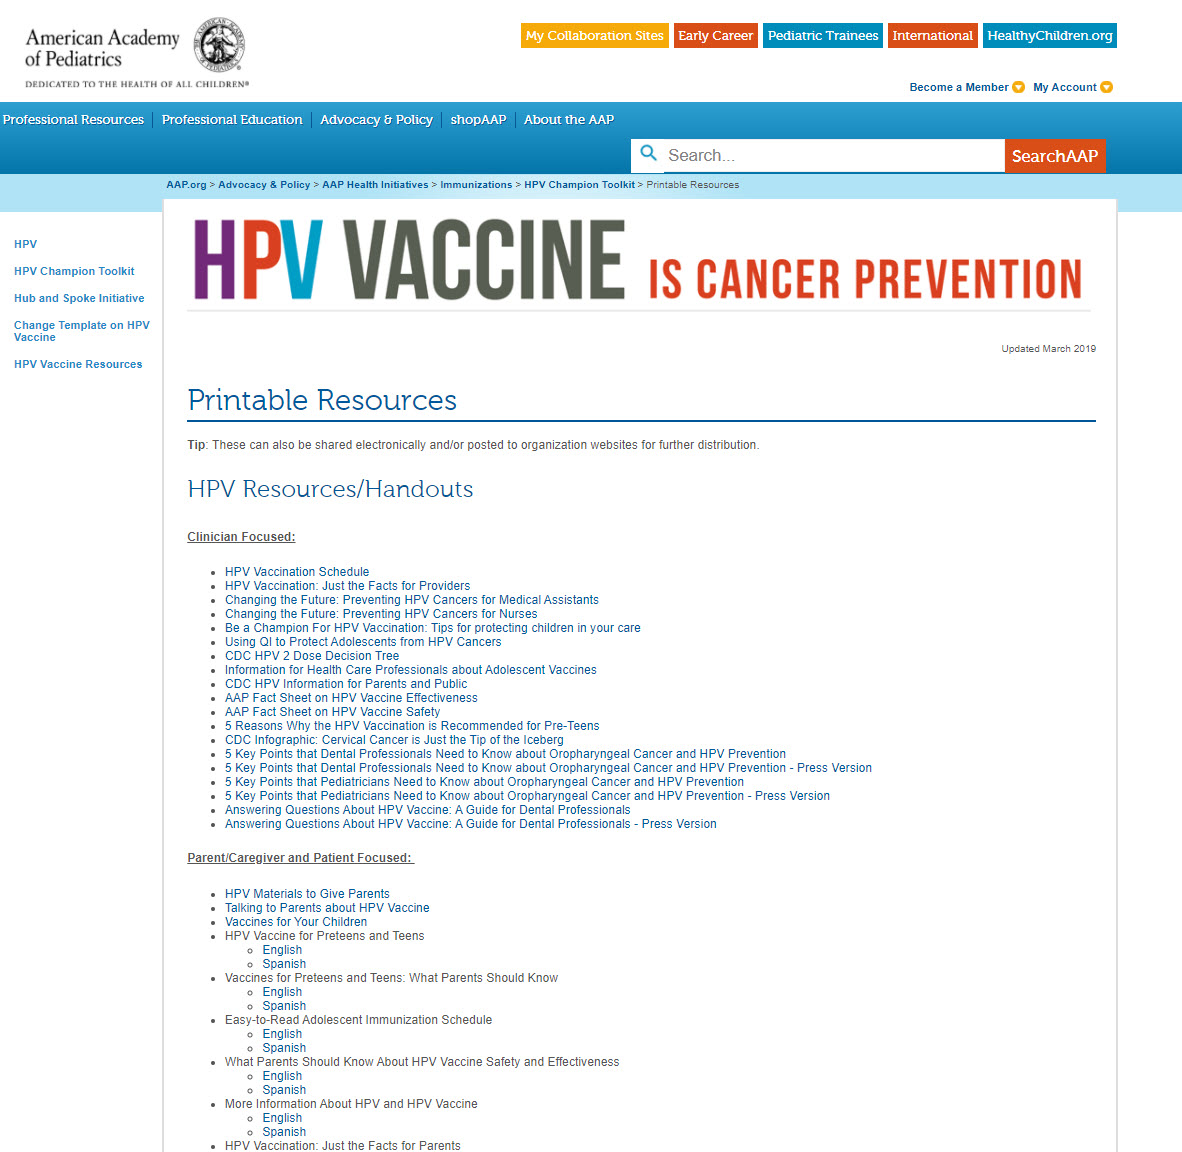 Webpage AAP HPV Vaccine is Cancer Prevention